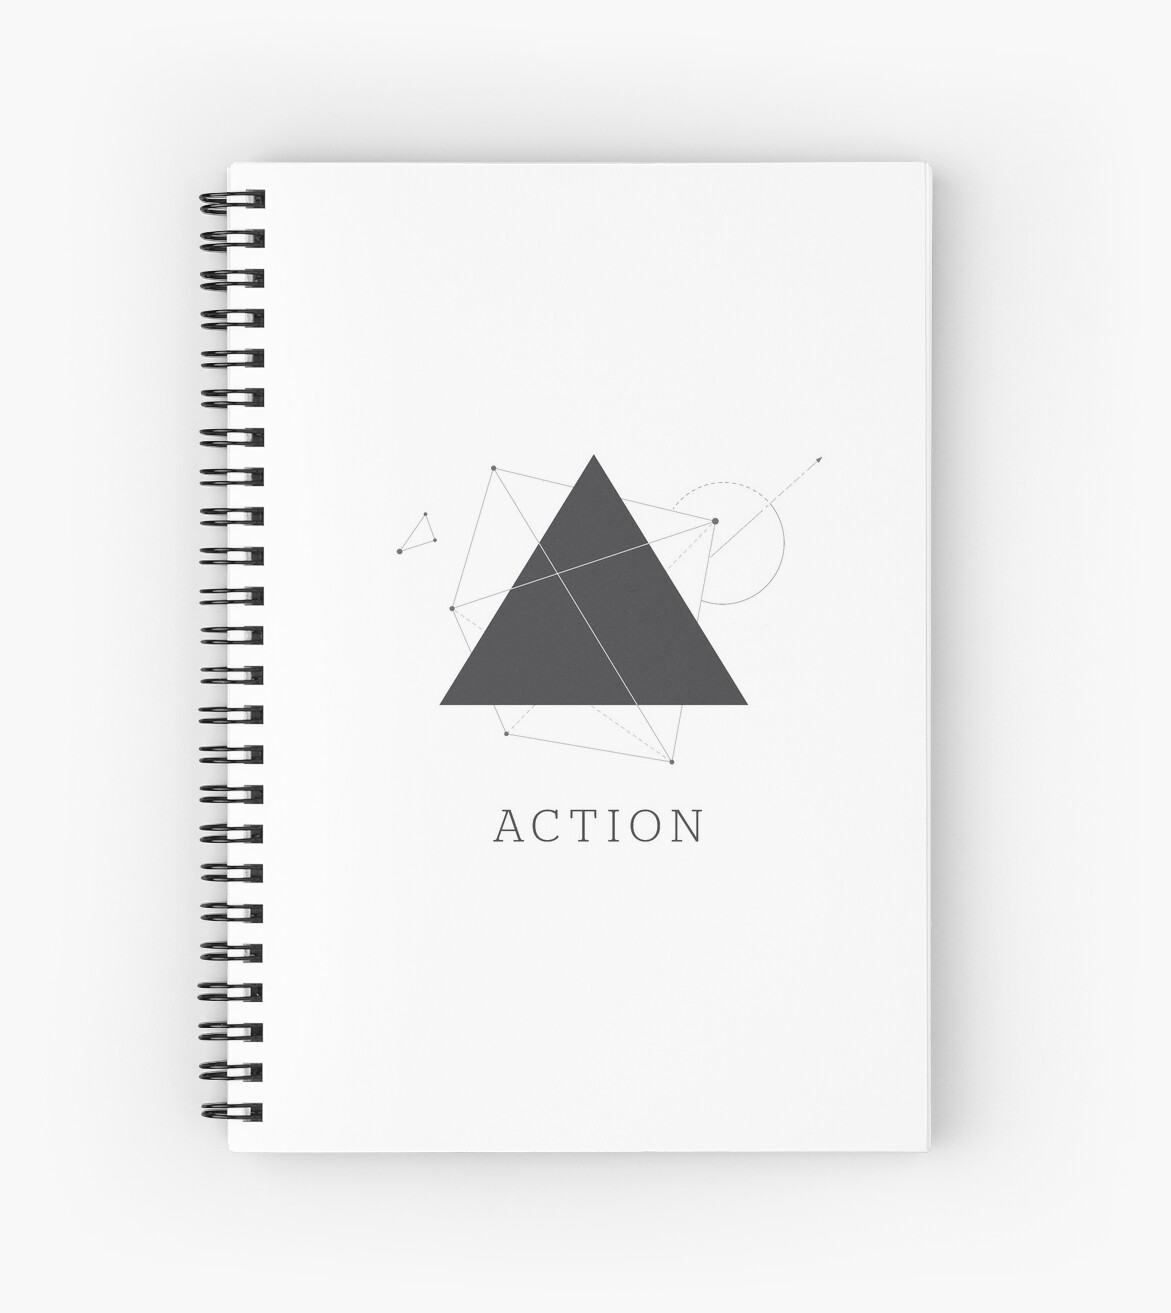 Target Shape - Action by mutebook